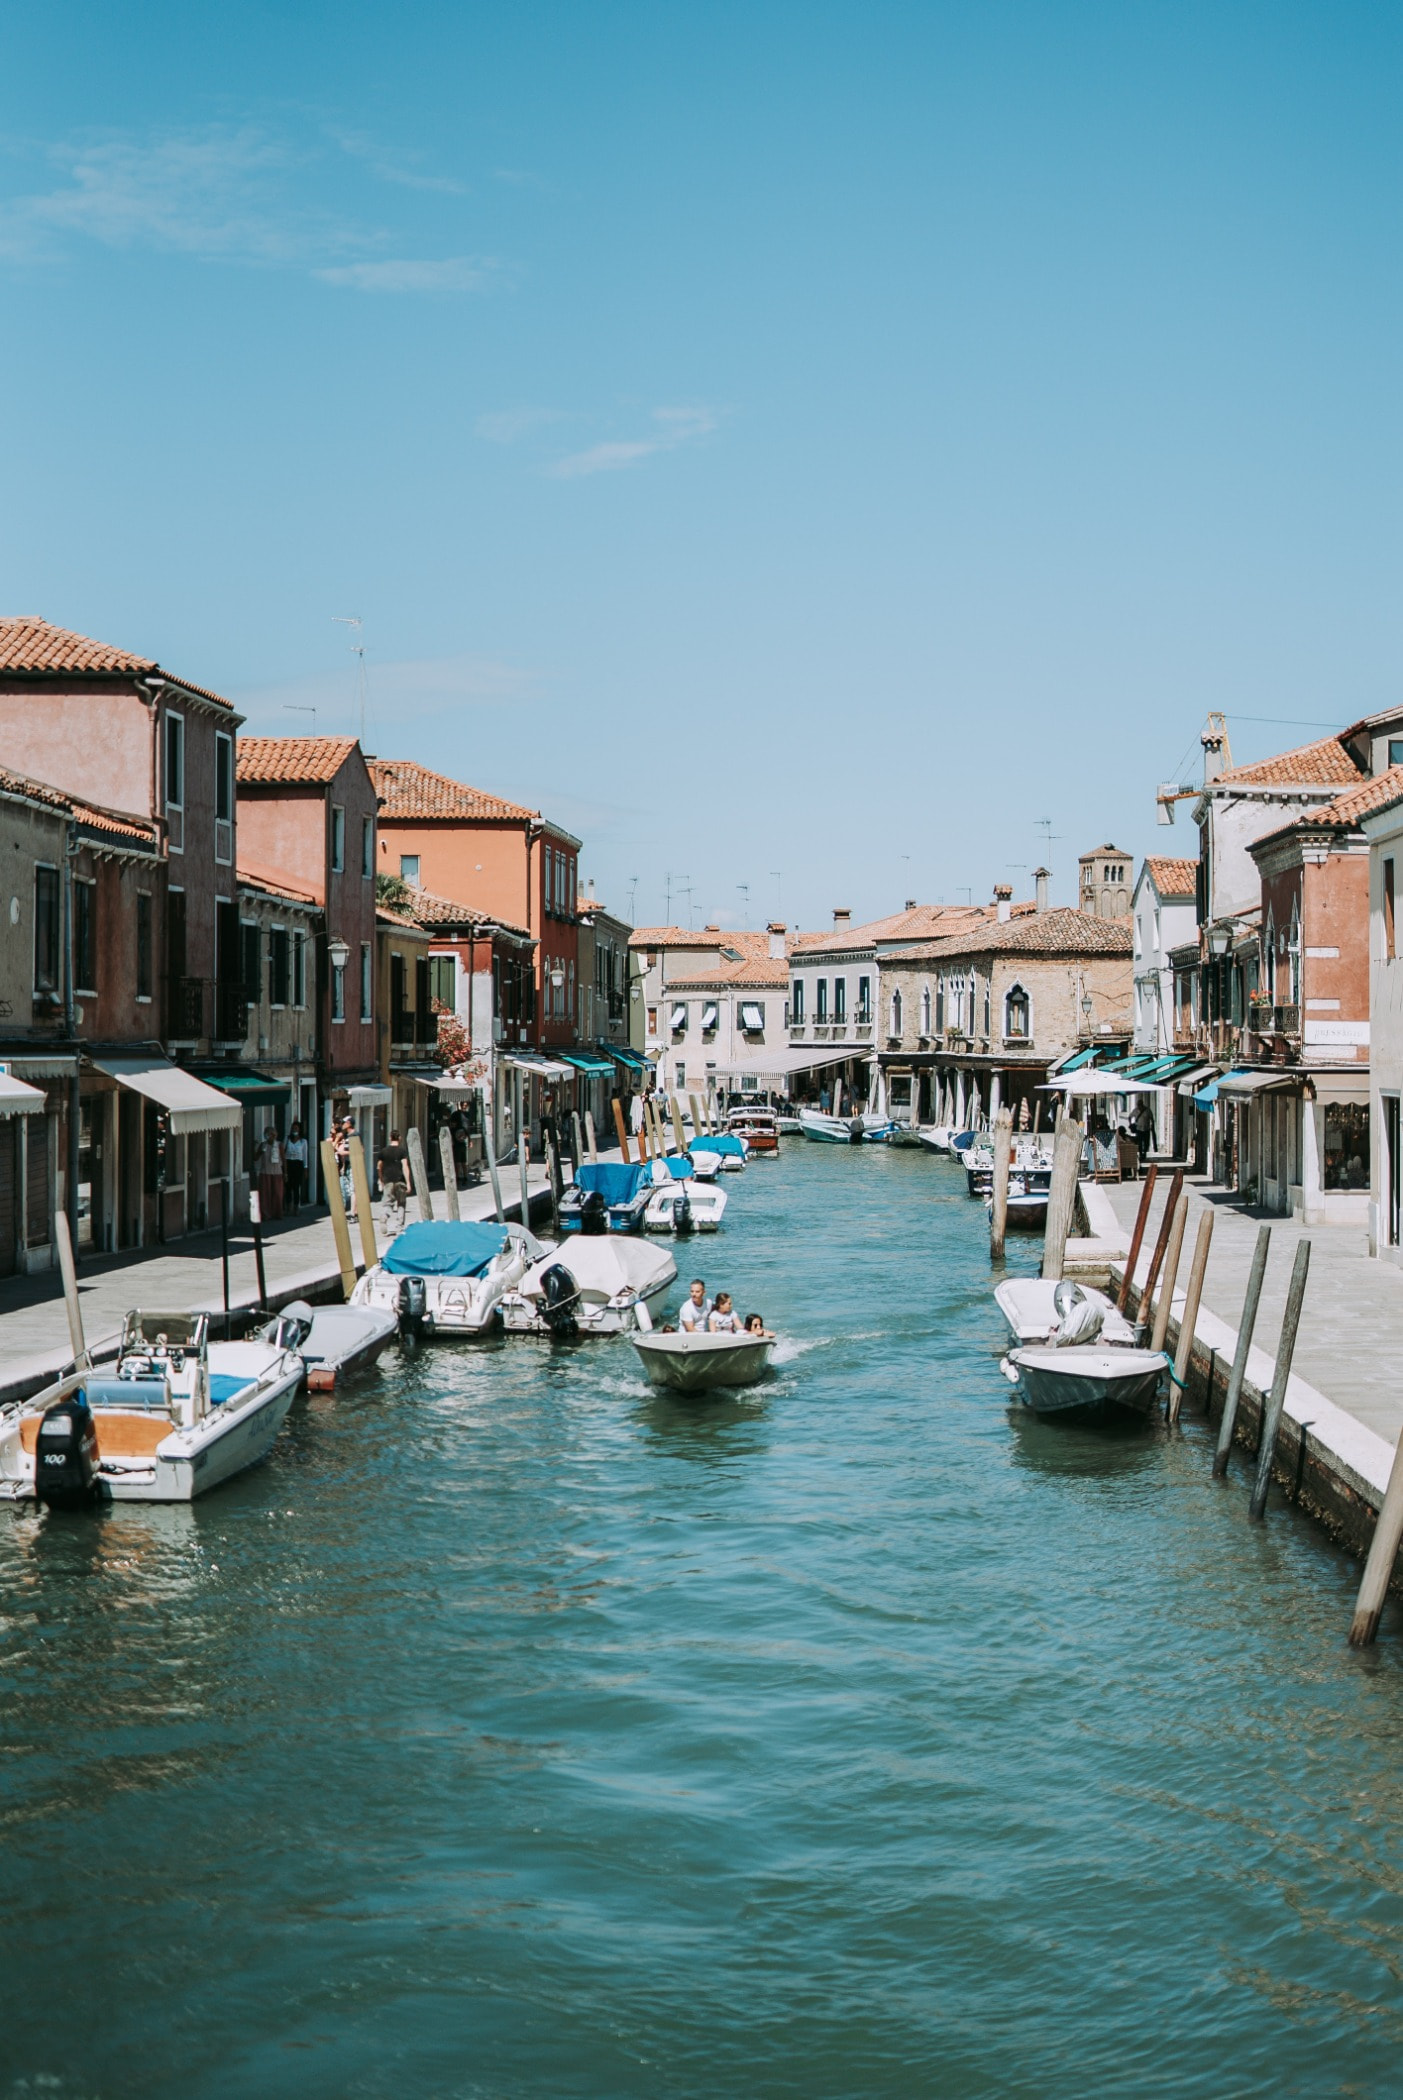 Body of water, Vacation, Sky, Town, Channel, Boat, Waterway, Canal